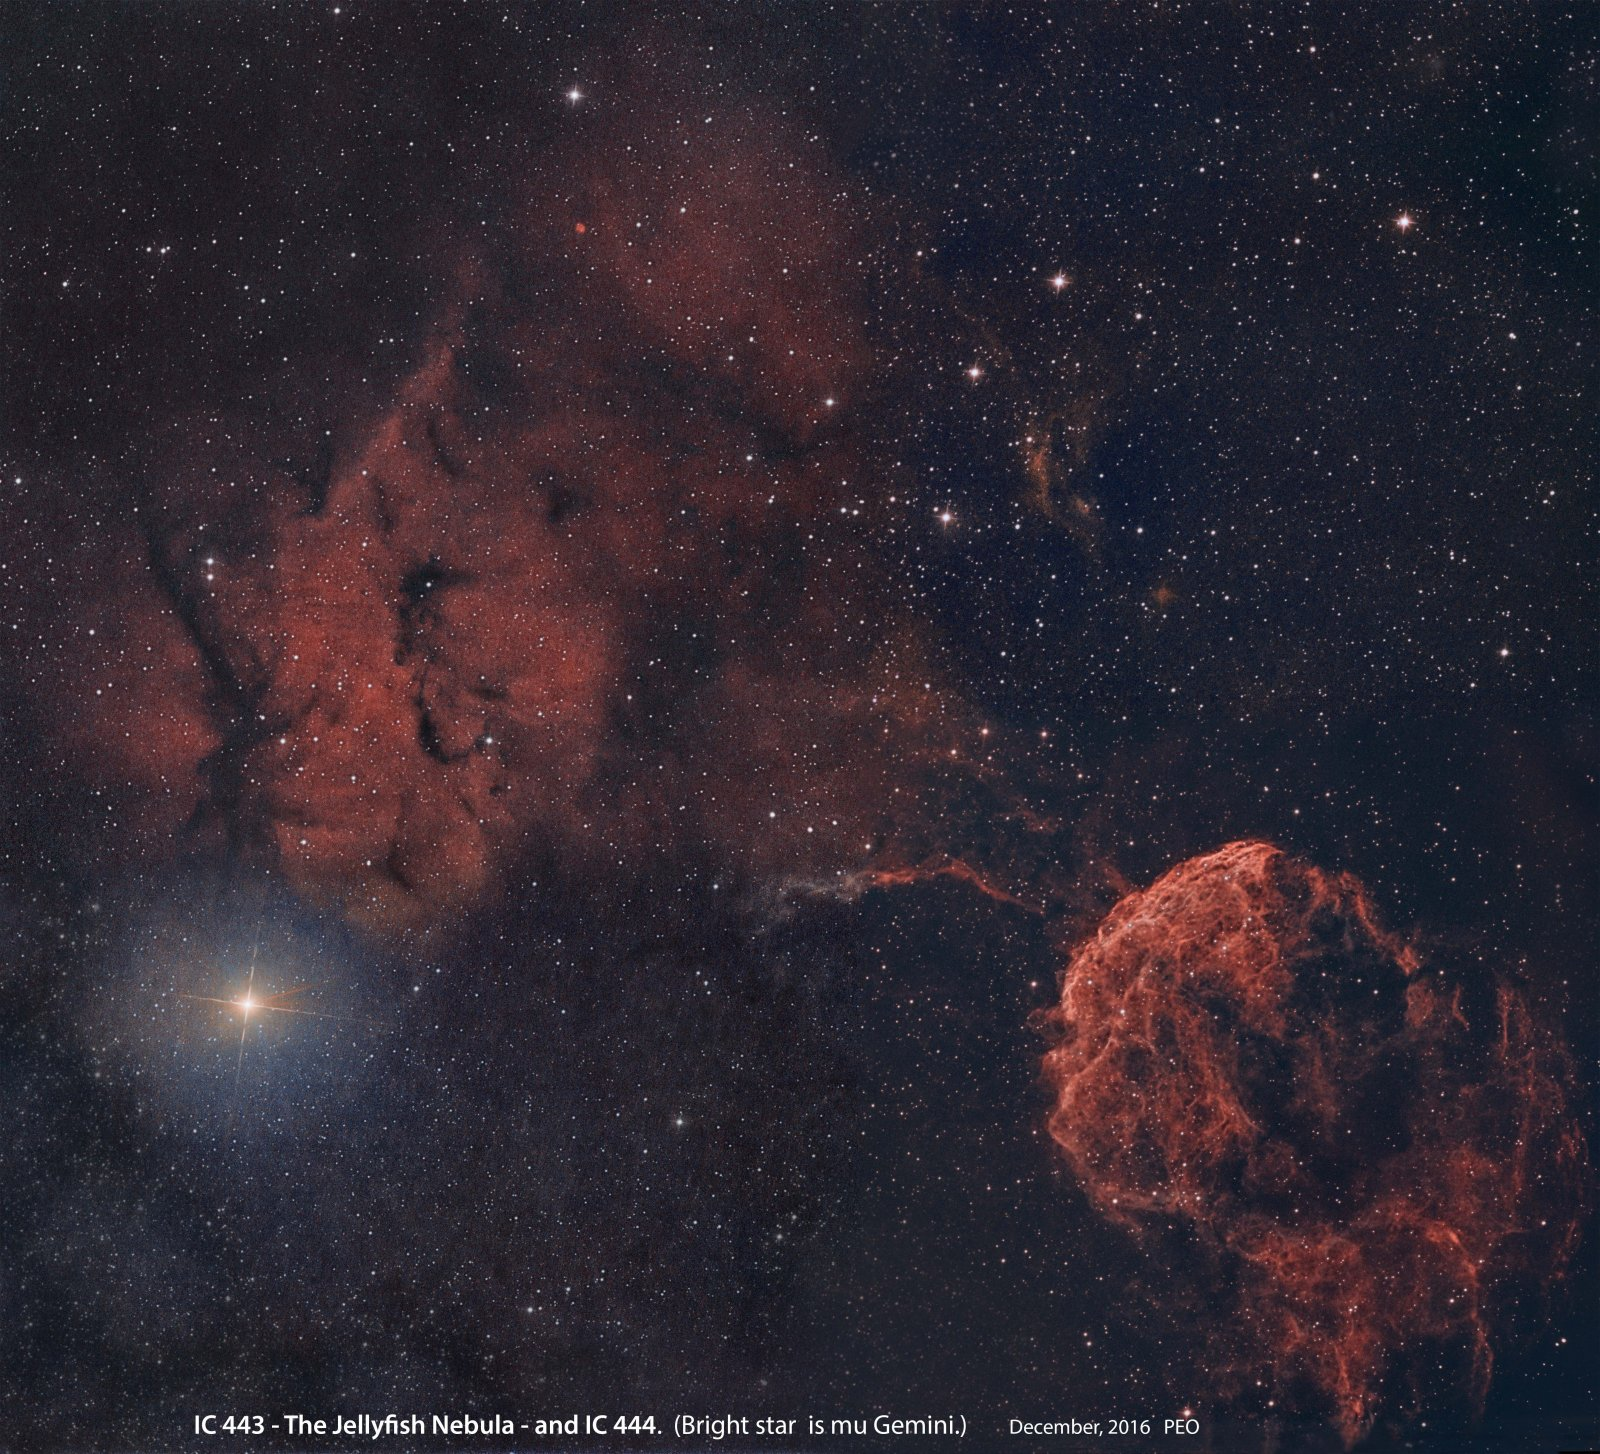 IC443 and 444